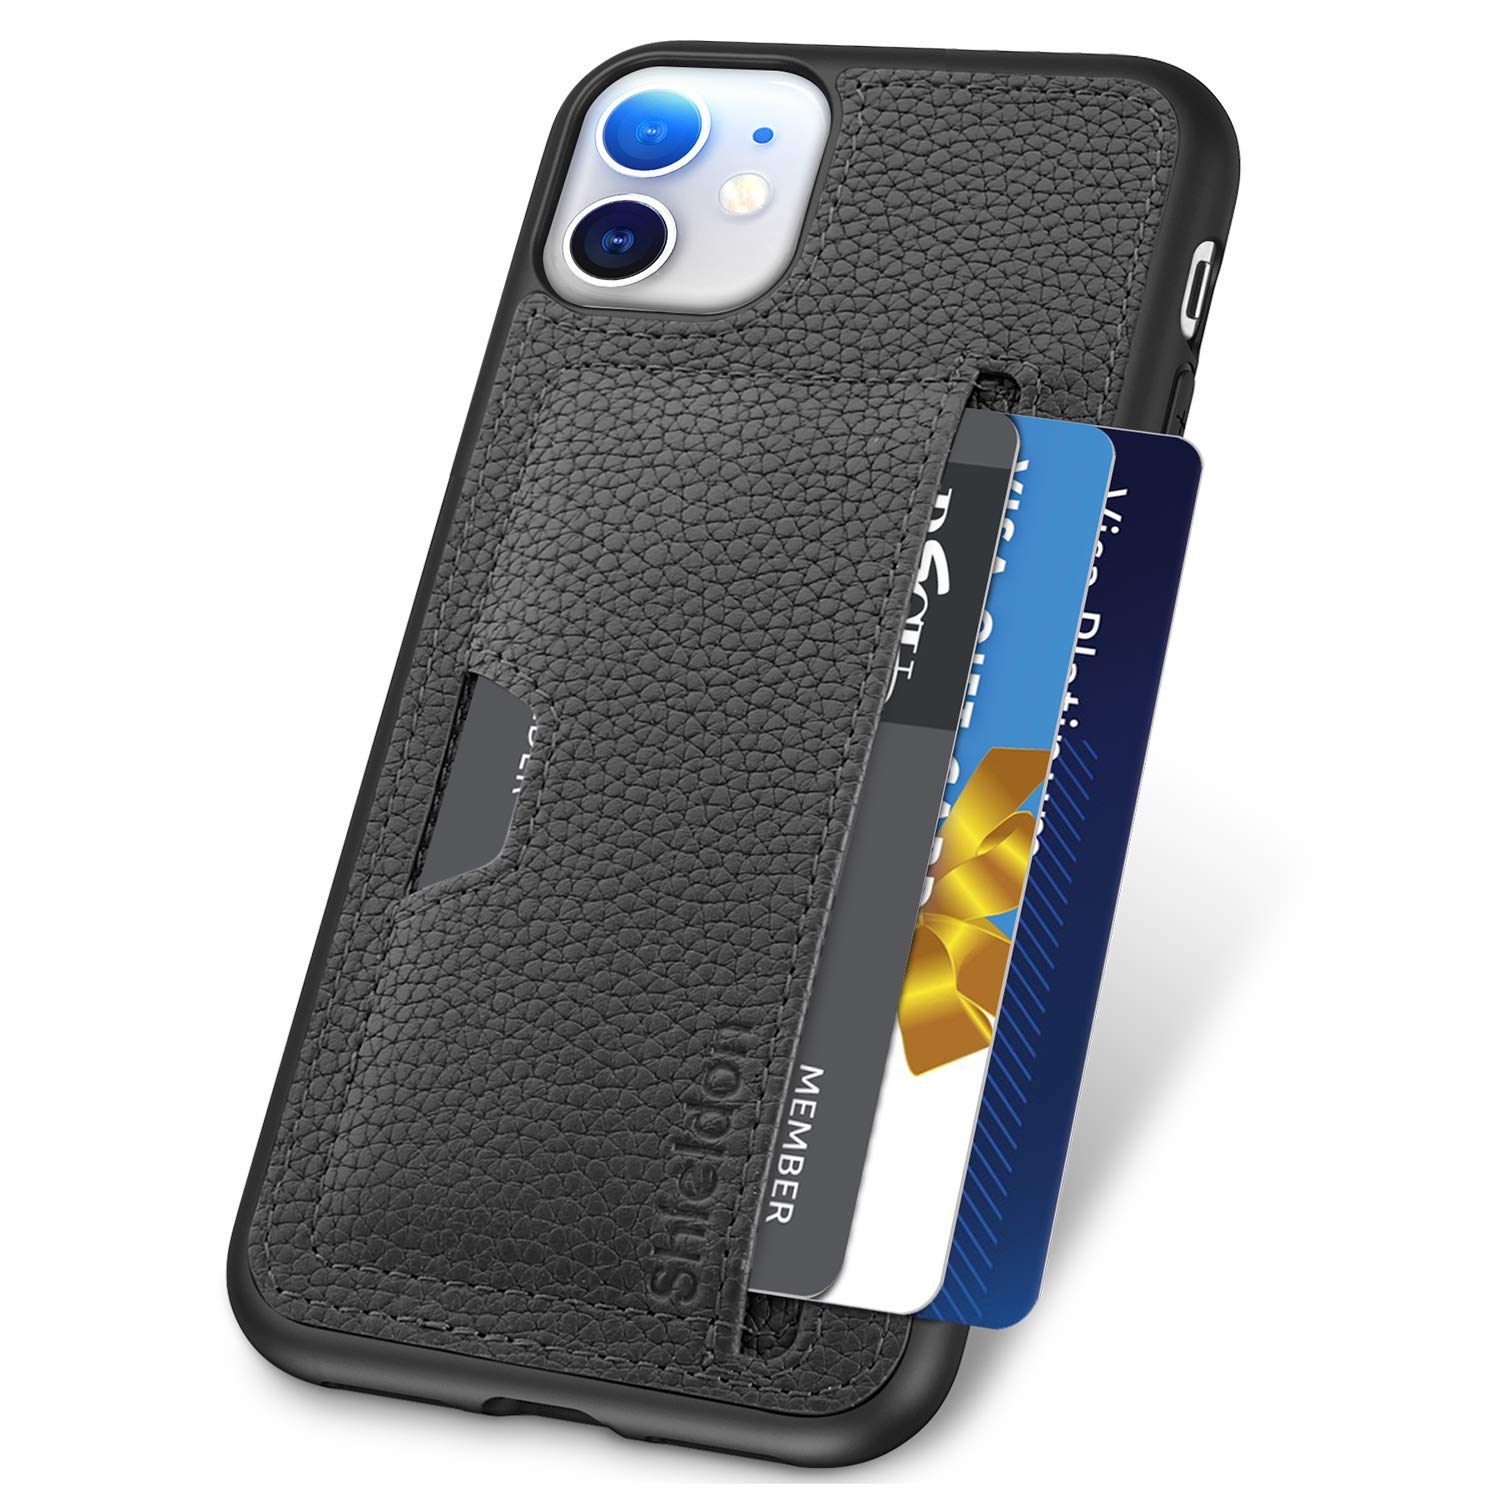 SHIELDON iPhone 11 Case, Genuine Leather + TPU Shock Absorption iPhone 11 Wallet Case Support Wireless Charging with Card Holder Compatible with iPhone 11 (6.1-inch, 2019 Release) - Black